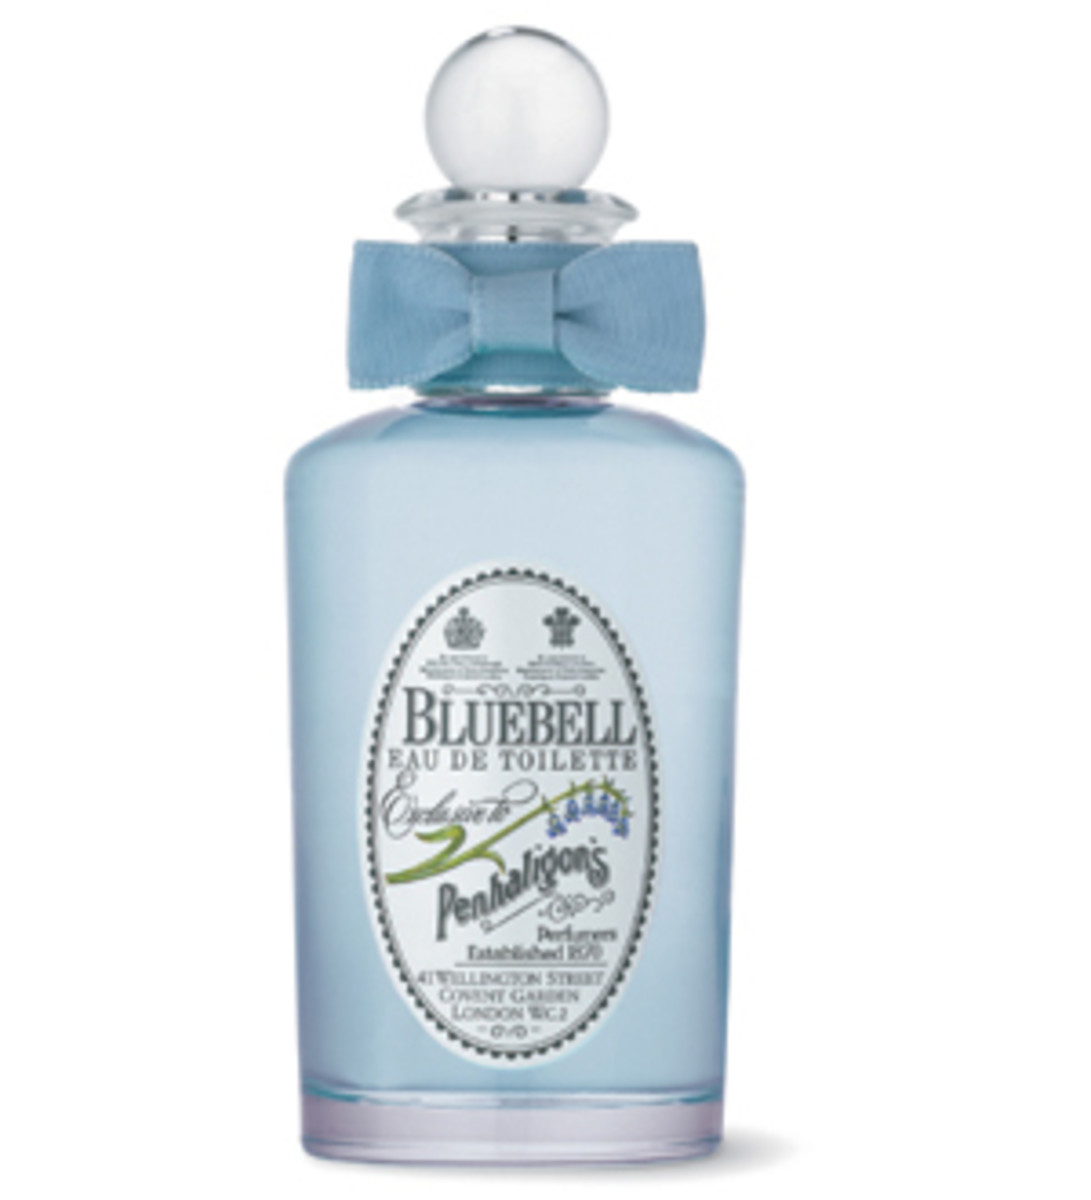 Bluebell Penhaligon, a Kate Moss favorite